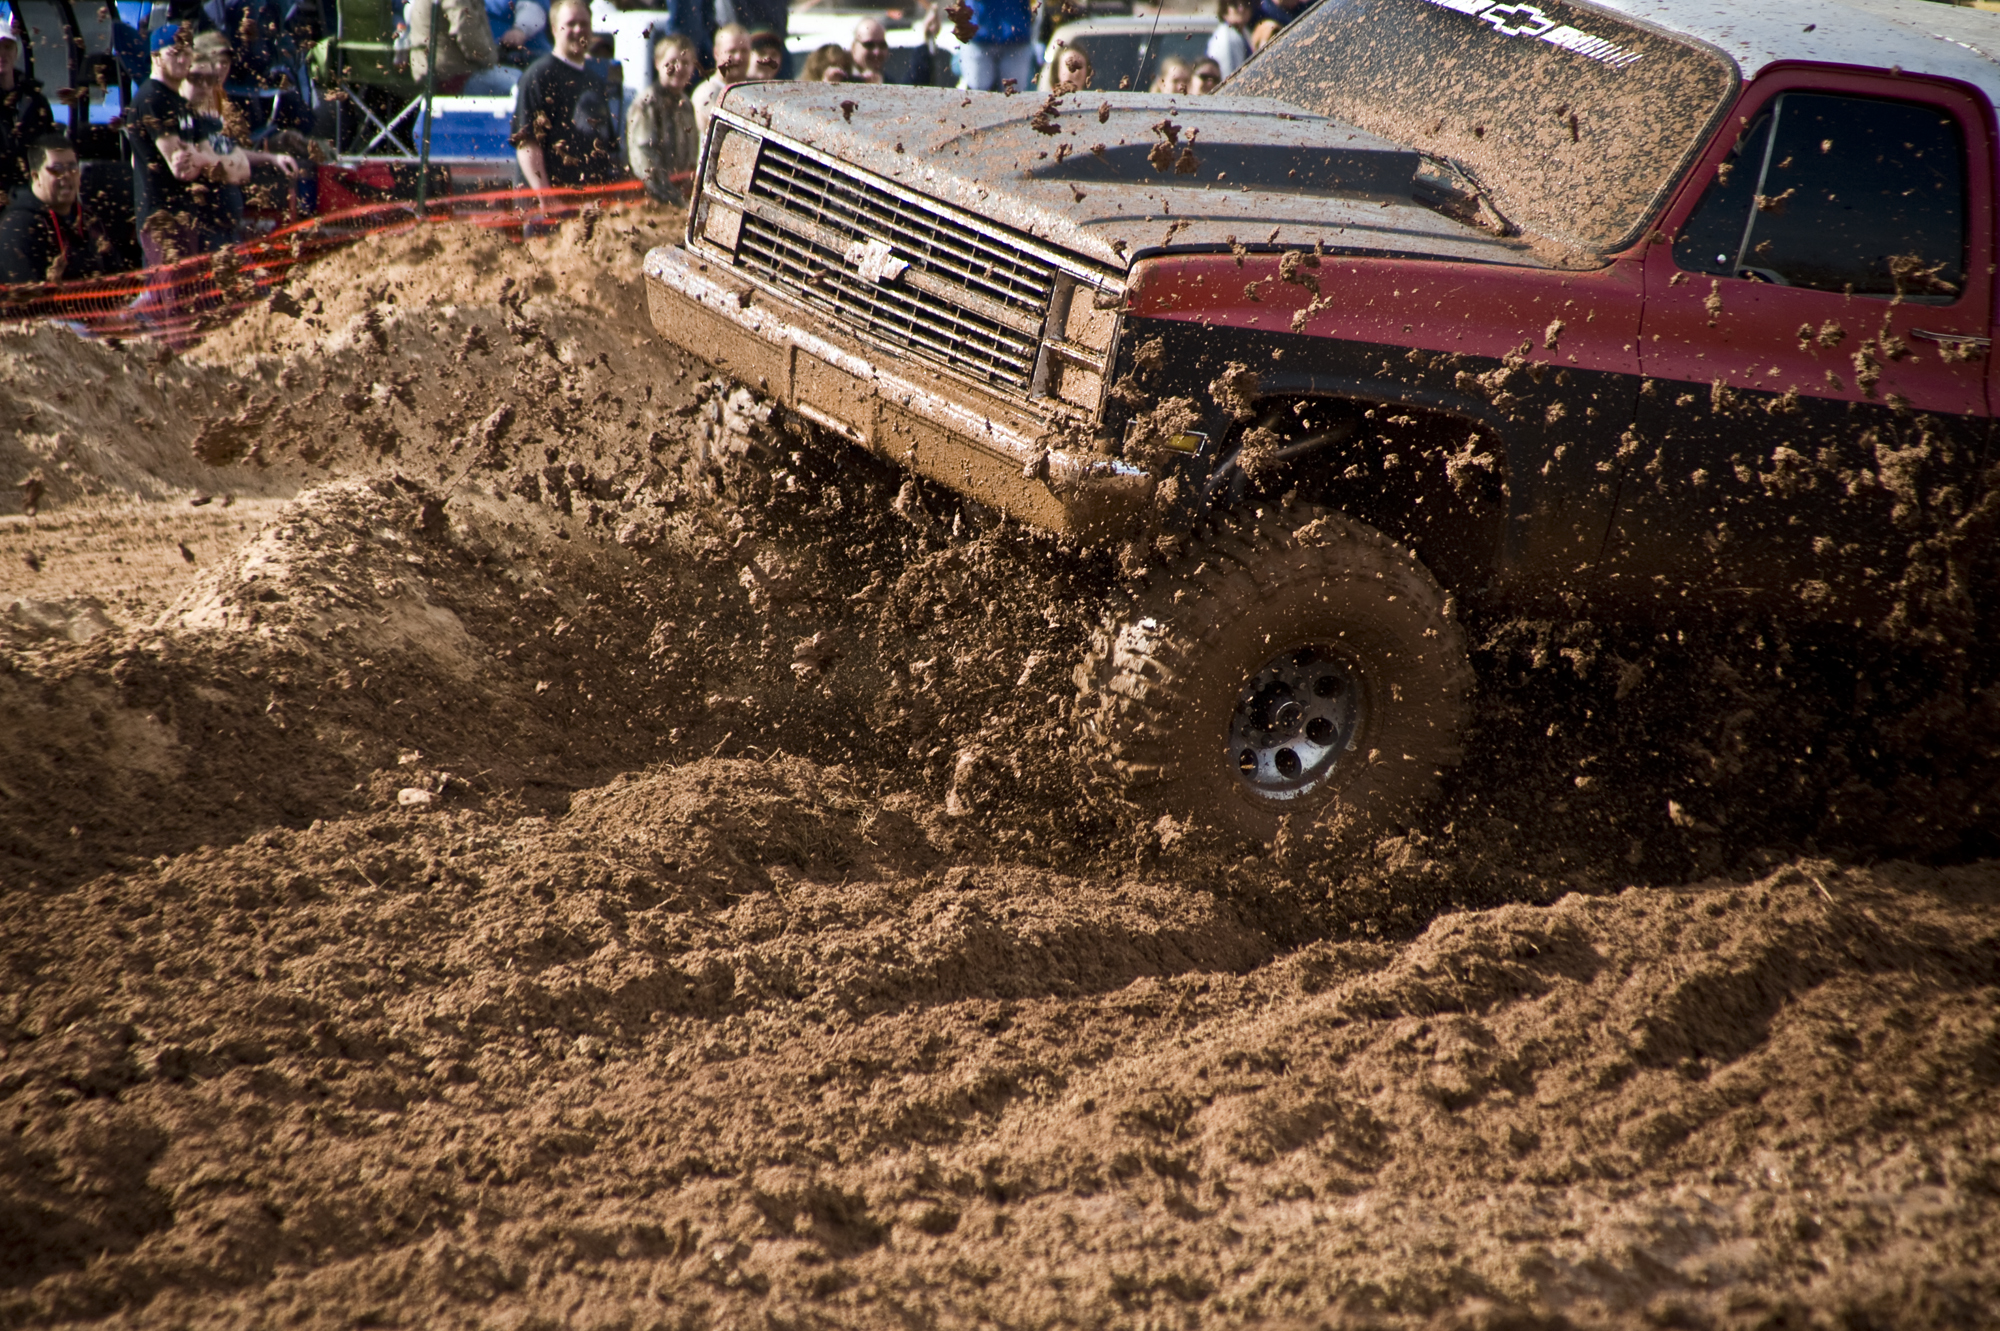 Mud Trucks Wallpaper - WallpaperSafari